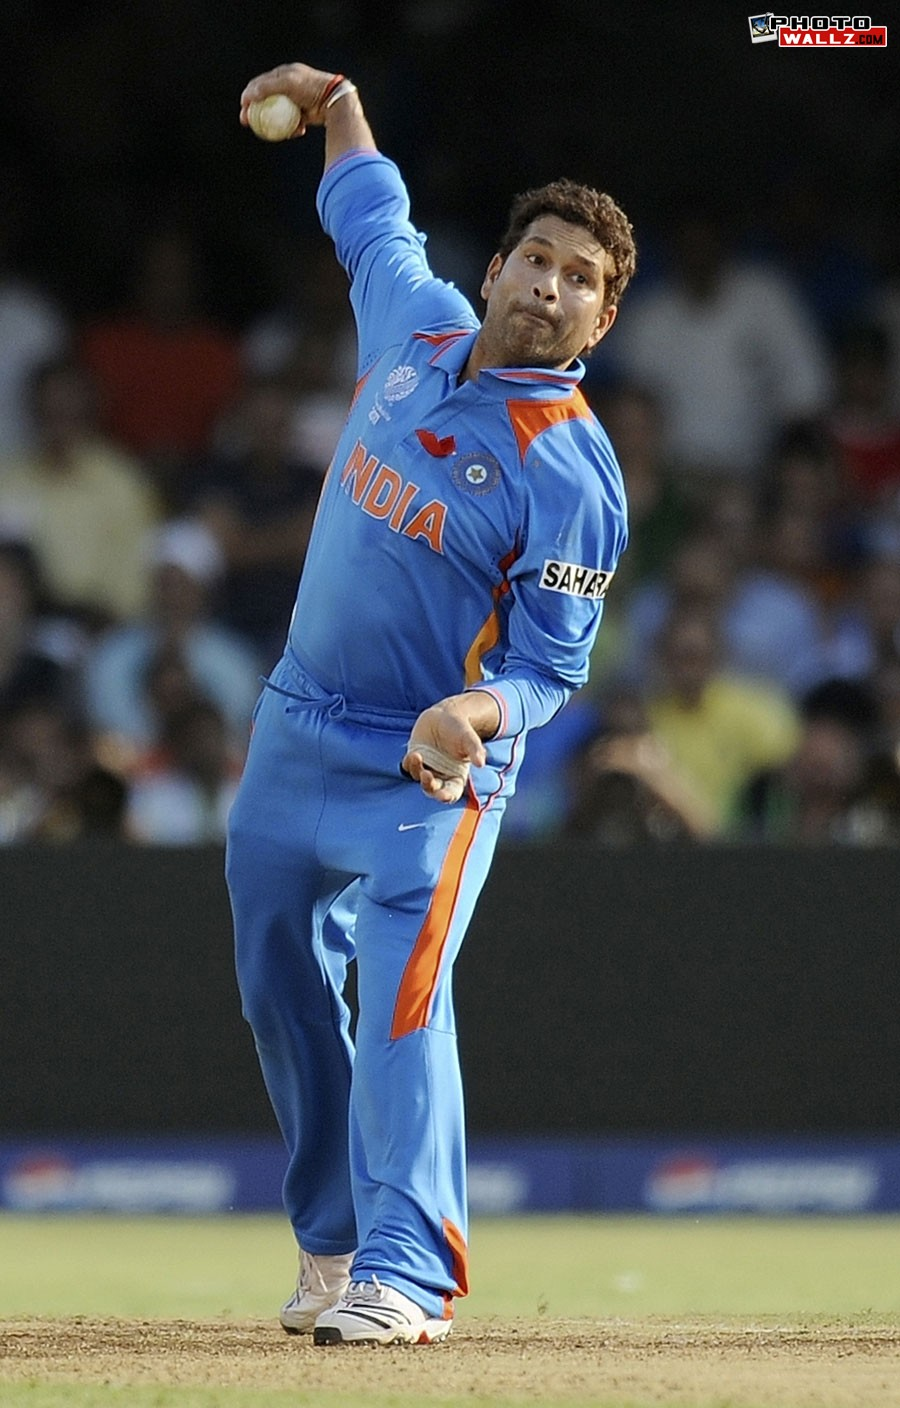 ngeblog anime: sachin tendulkar wallpapers pack 1